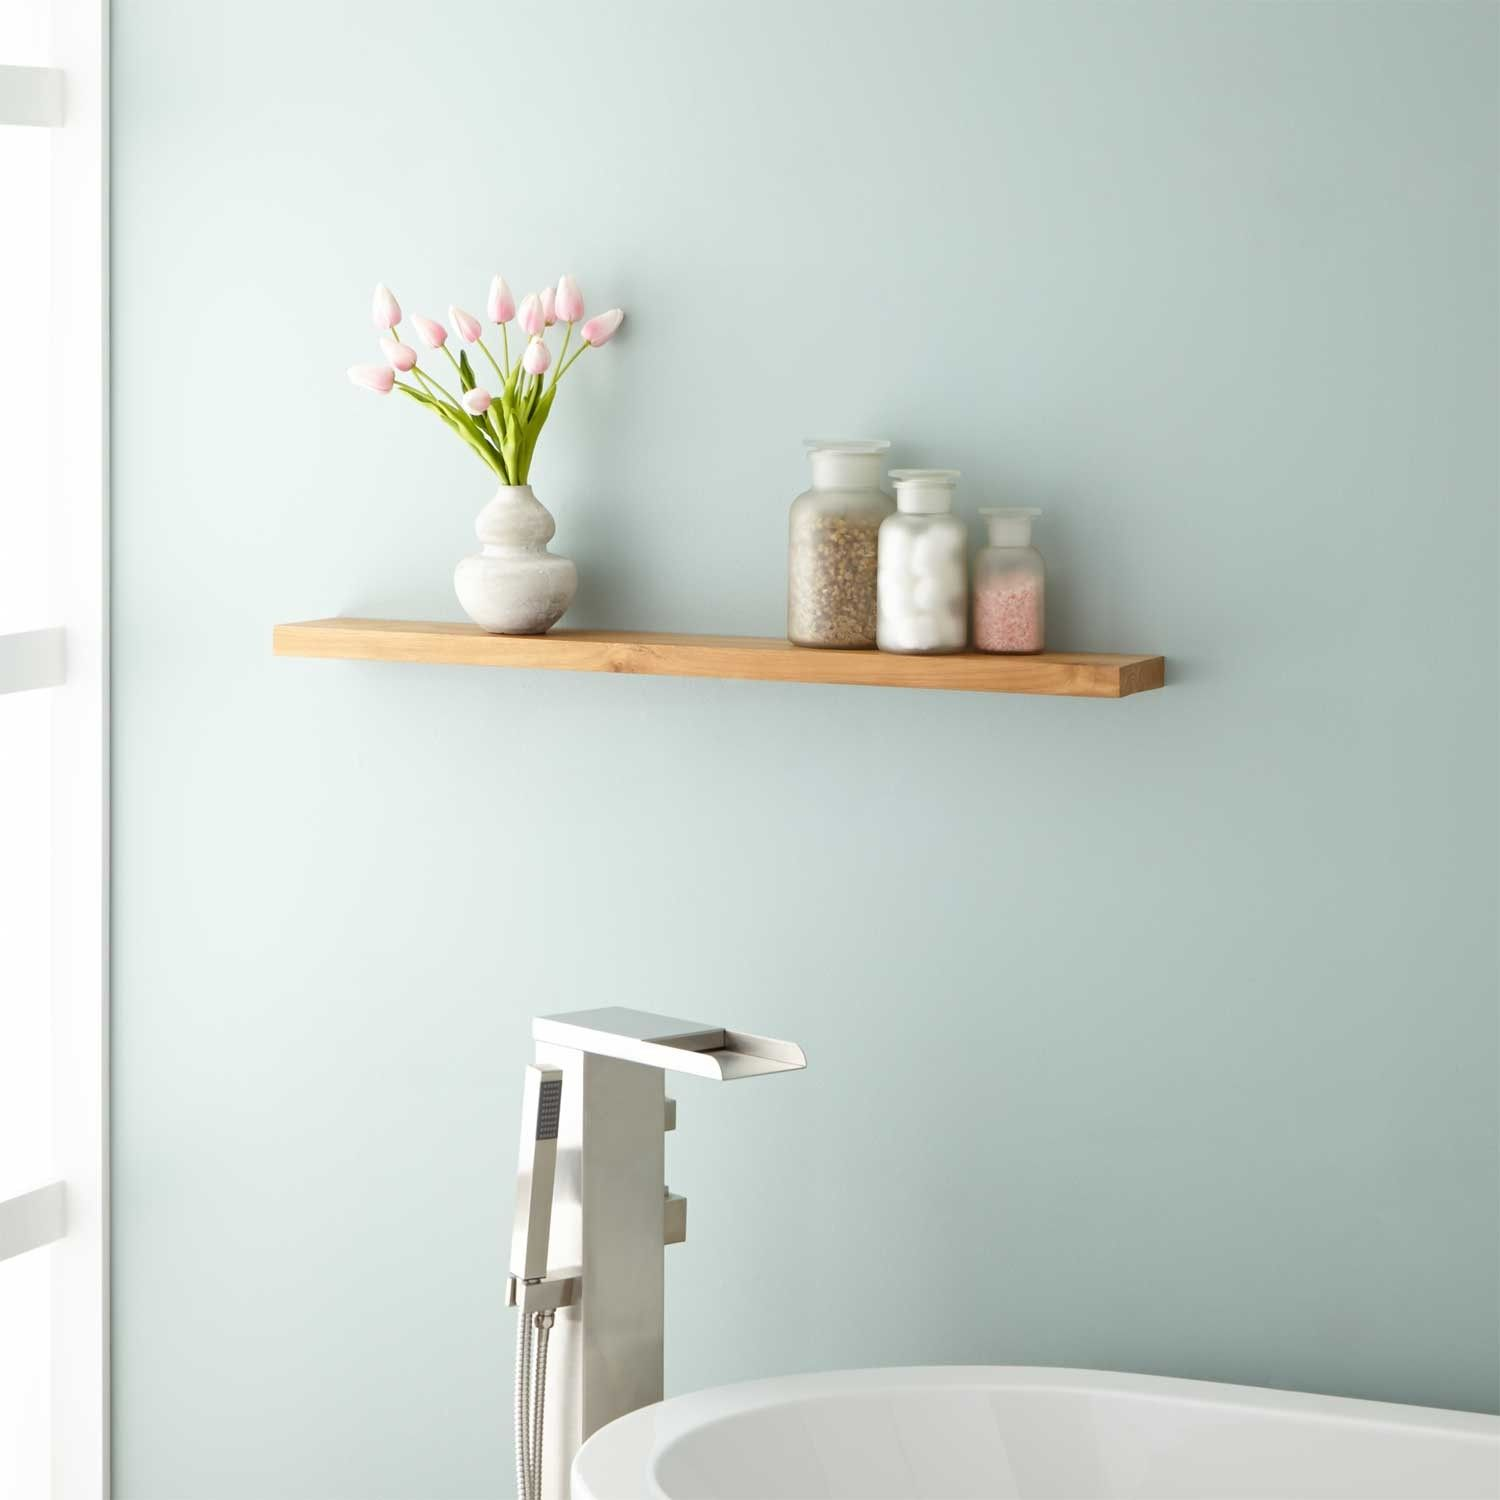 Wulan Teak Shelf | Teak, Bathroom accessories and Shelves